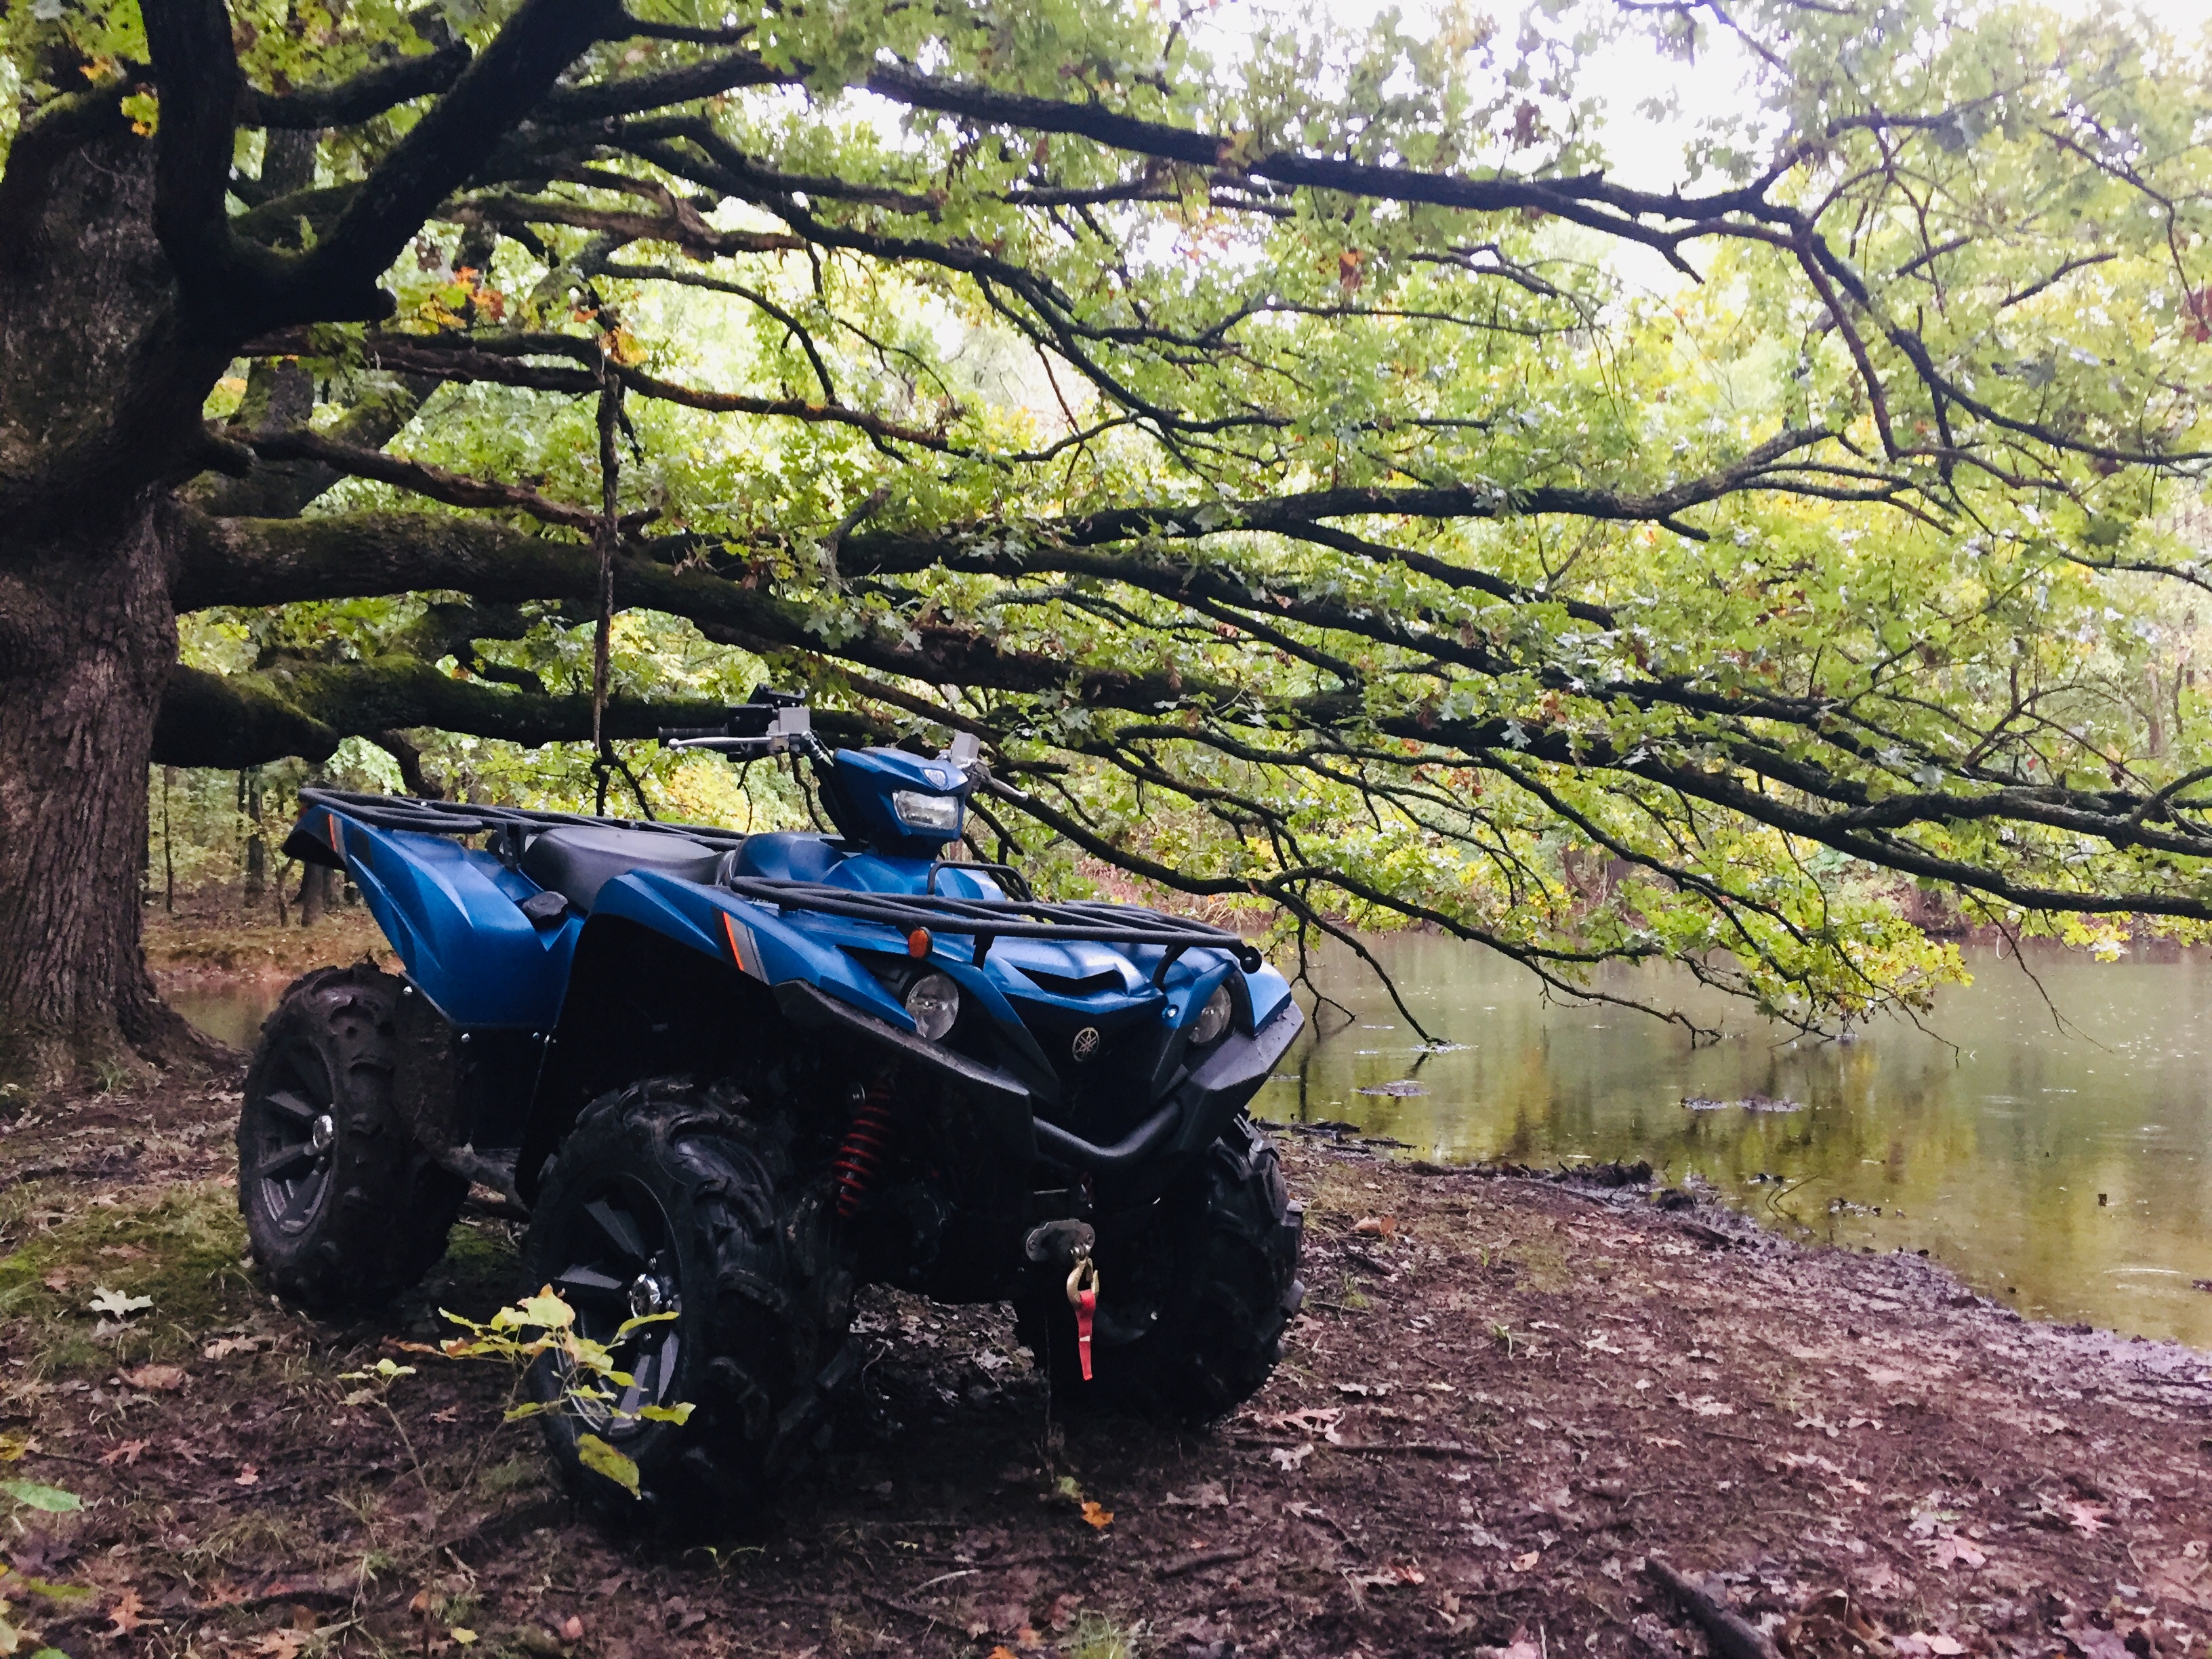 2019 Grizzly SE Backcountry Blue - Yamaha Grizzly ATV Forum